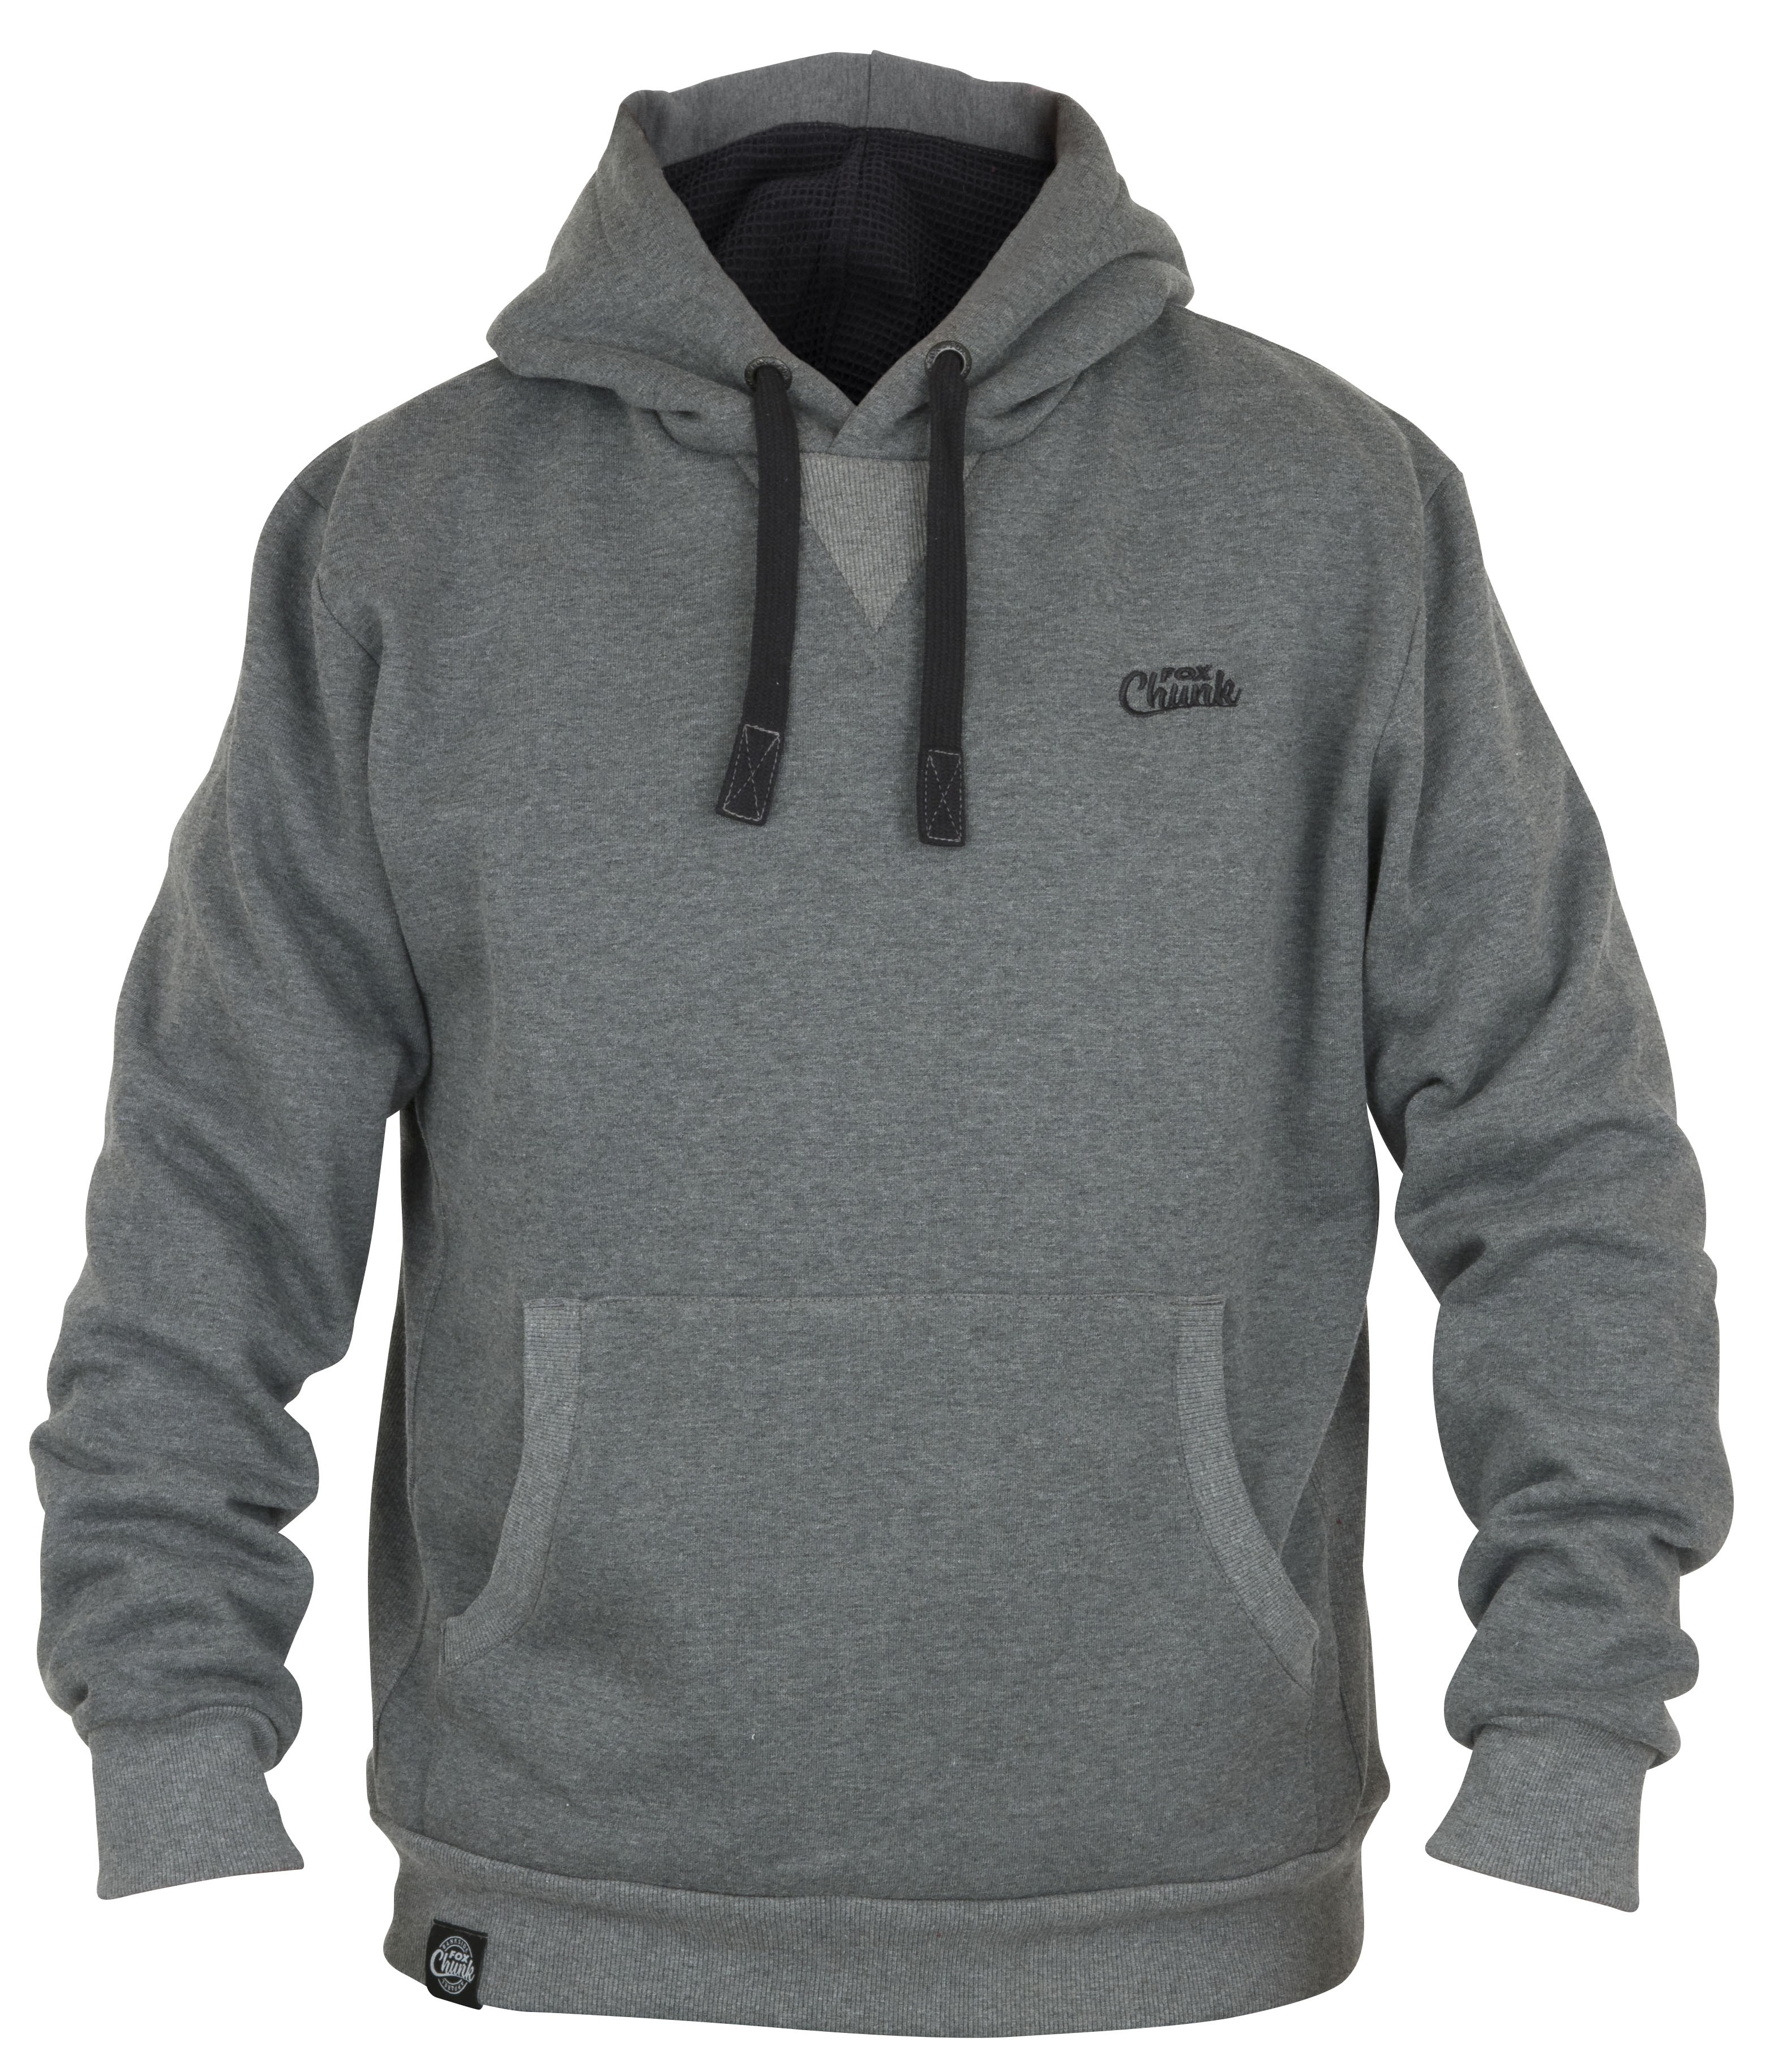 Fox - Chunk Ribbed Hoody Grey